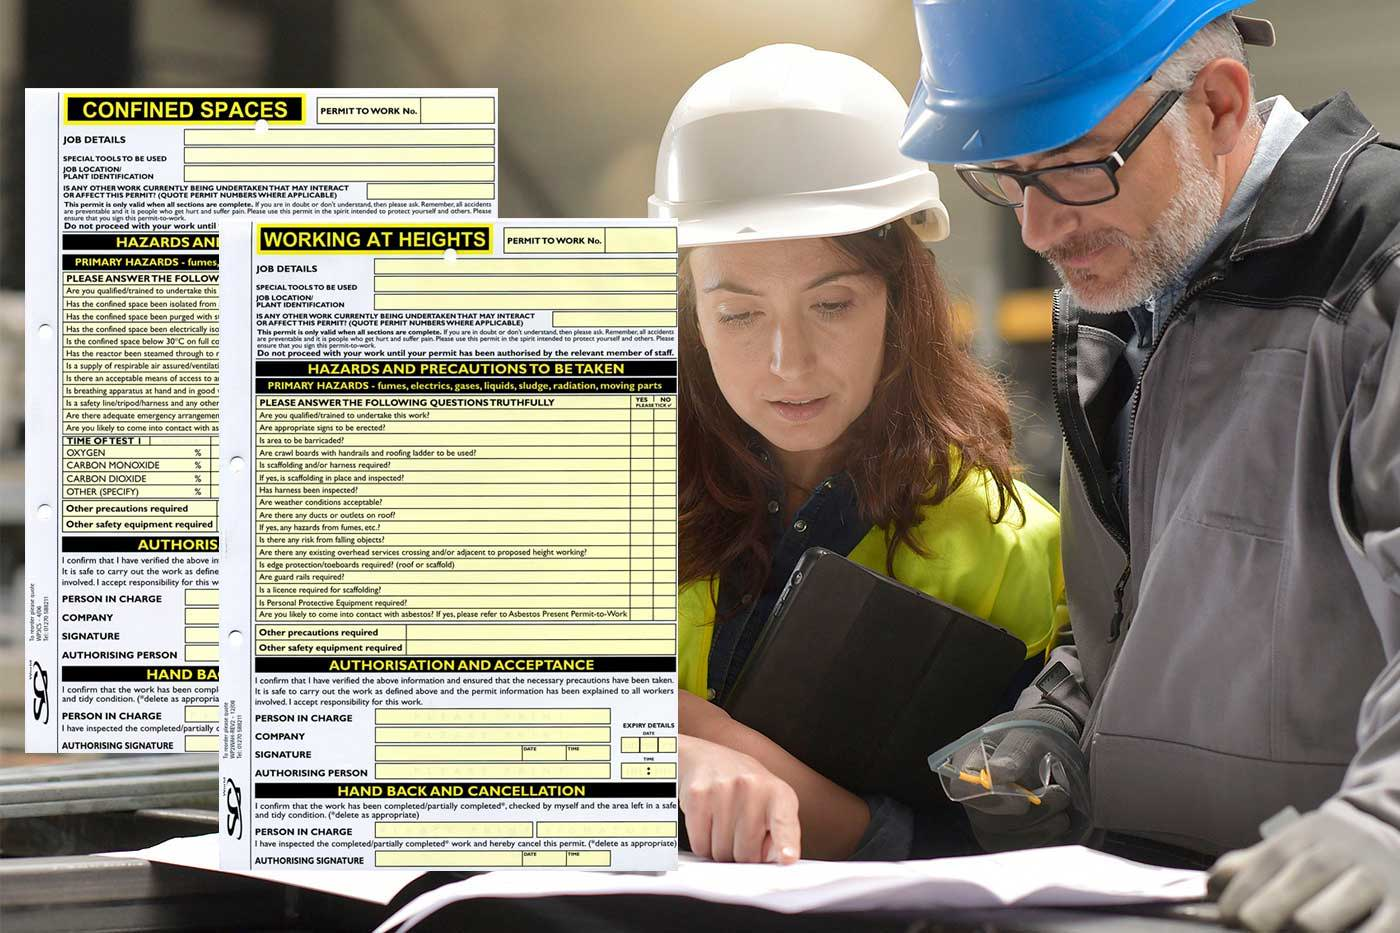 Confined Spaces Permit To Work | SG World